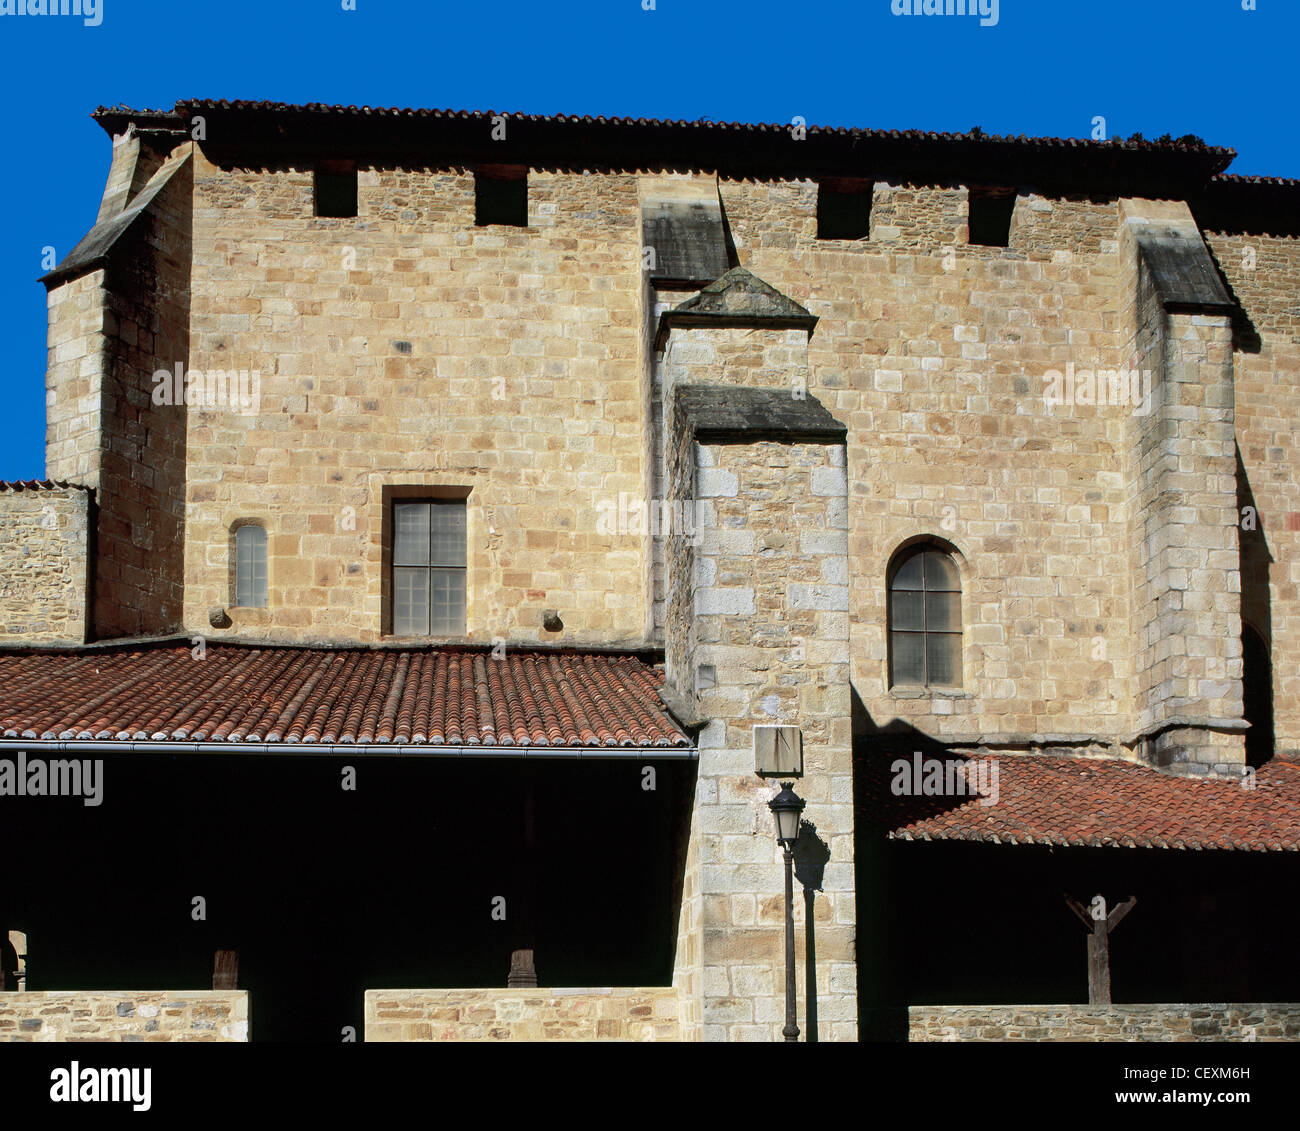 Spain. Collegiate Church of Cenarruza. 14th -15th centuries. Exterior. Basque Country. - Stock Image